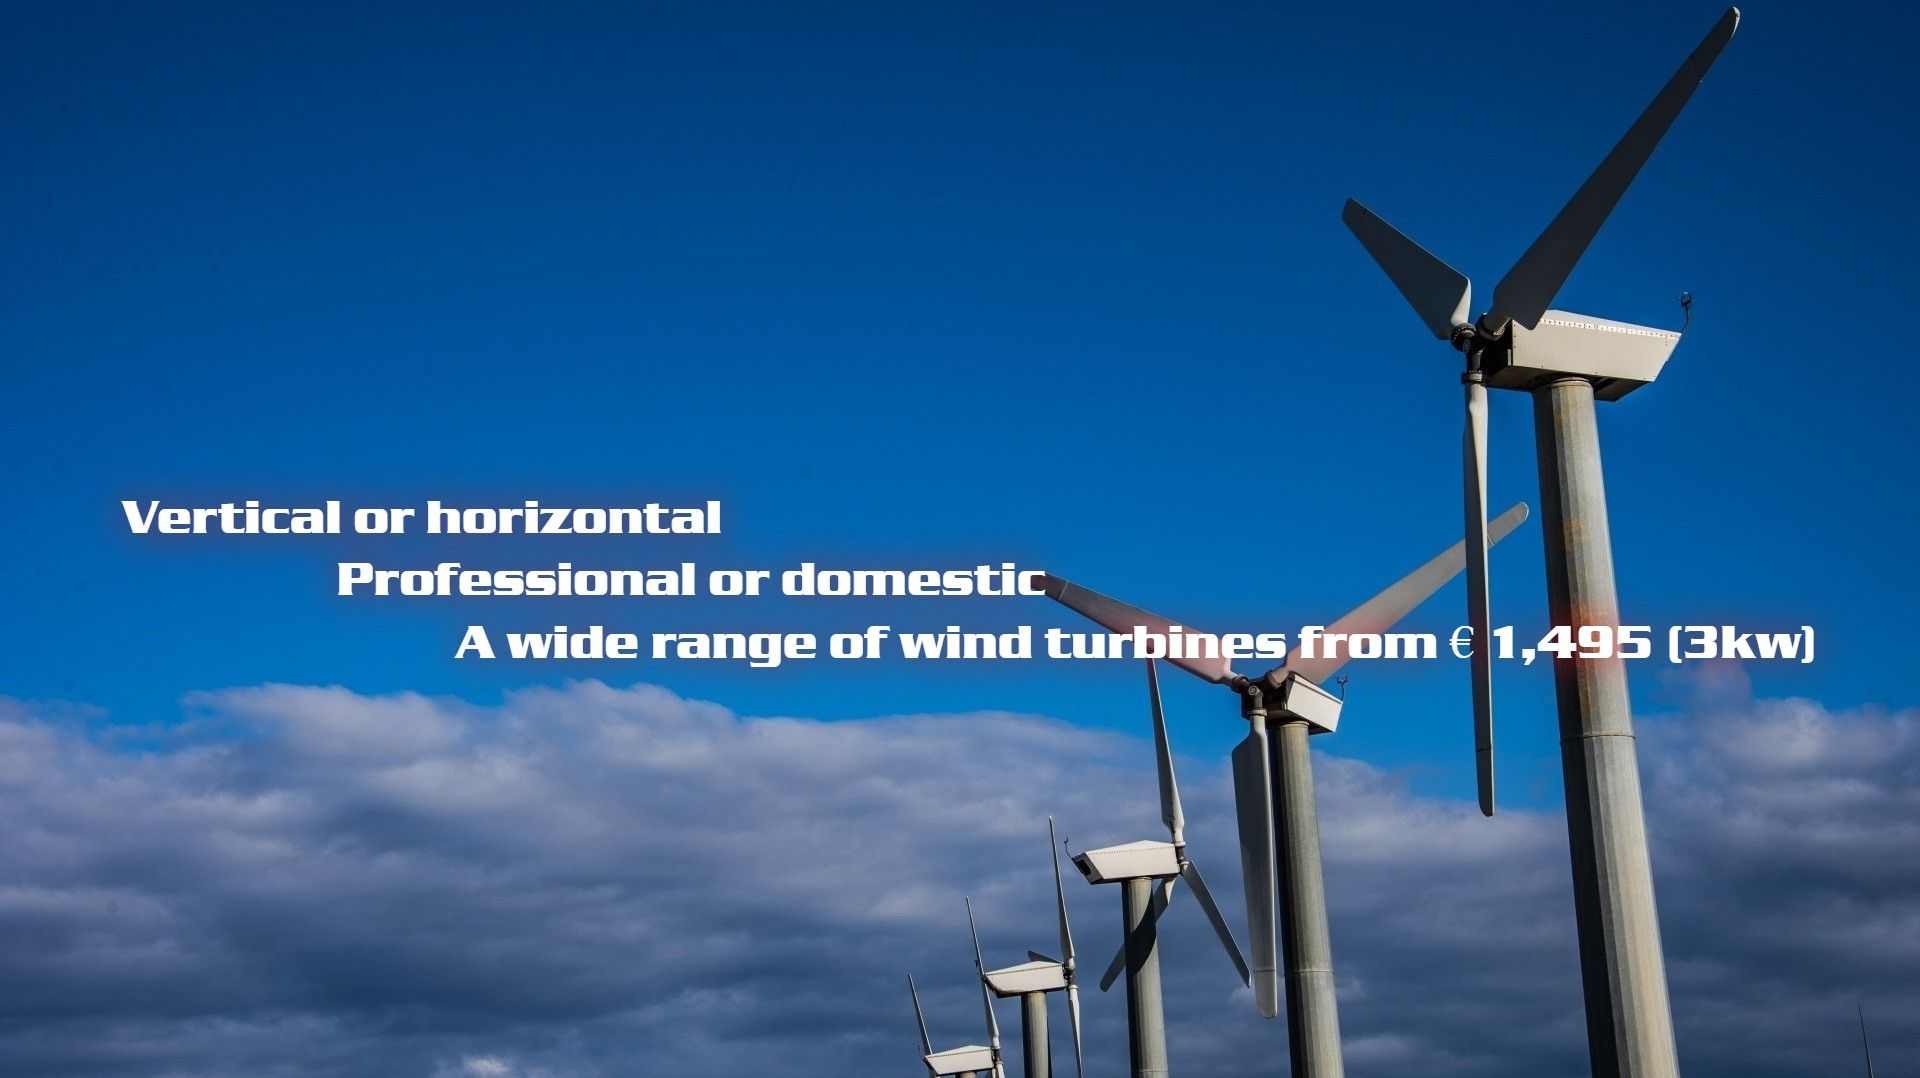 Horizontal and Vertical Wind Turbines Flexpro Industry